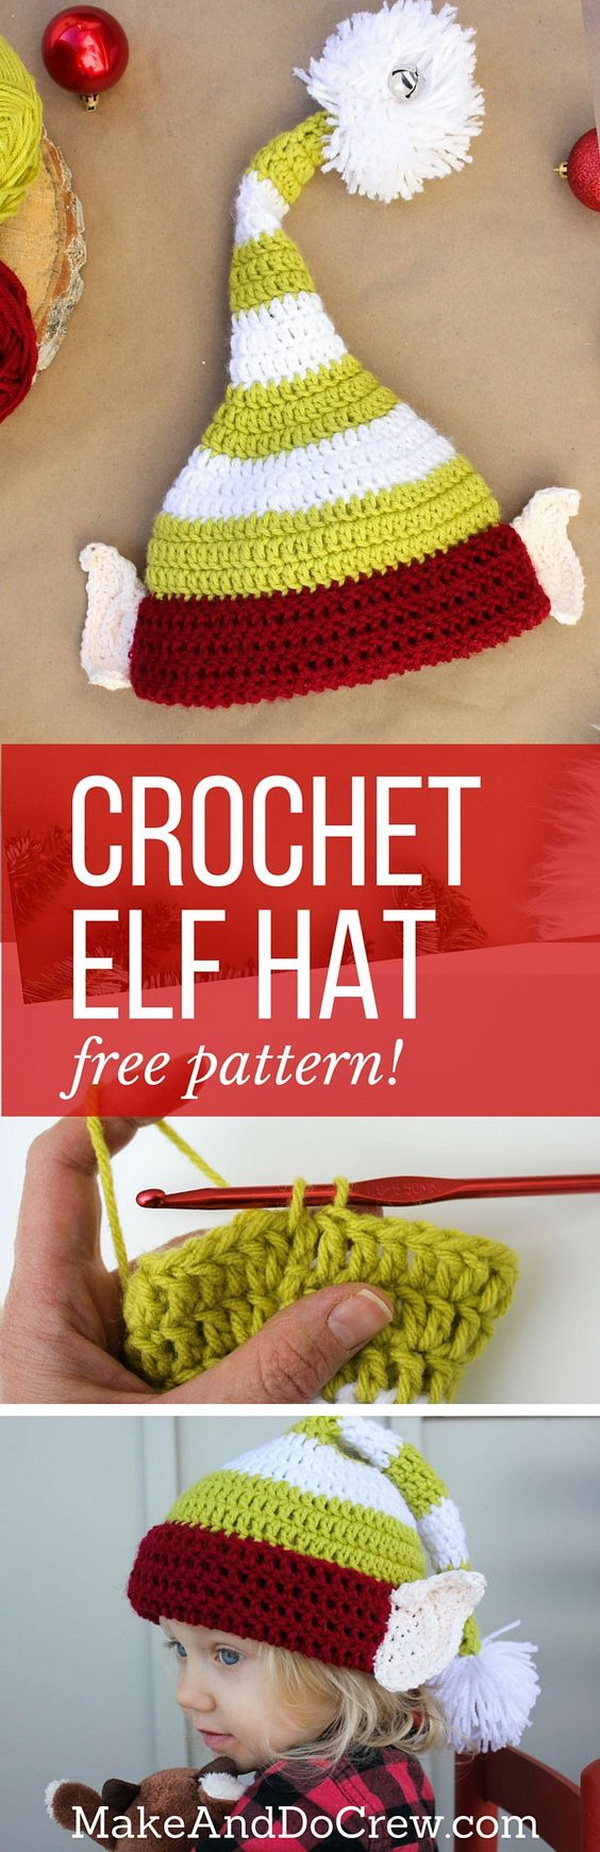 Crochet Elf Hat Pattern. A cute crochet elf hat pattern with little pointy ears will be the great Christmas gift for your kids or any little ones you love.